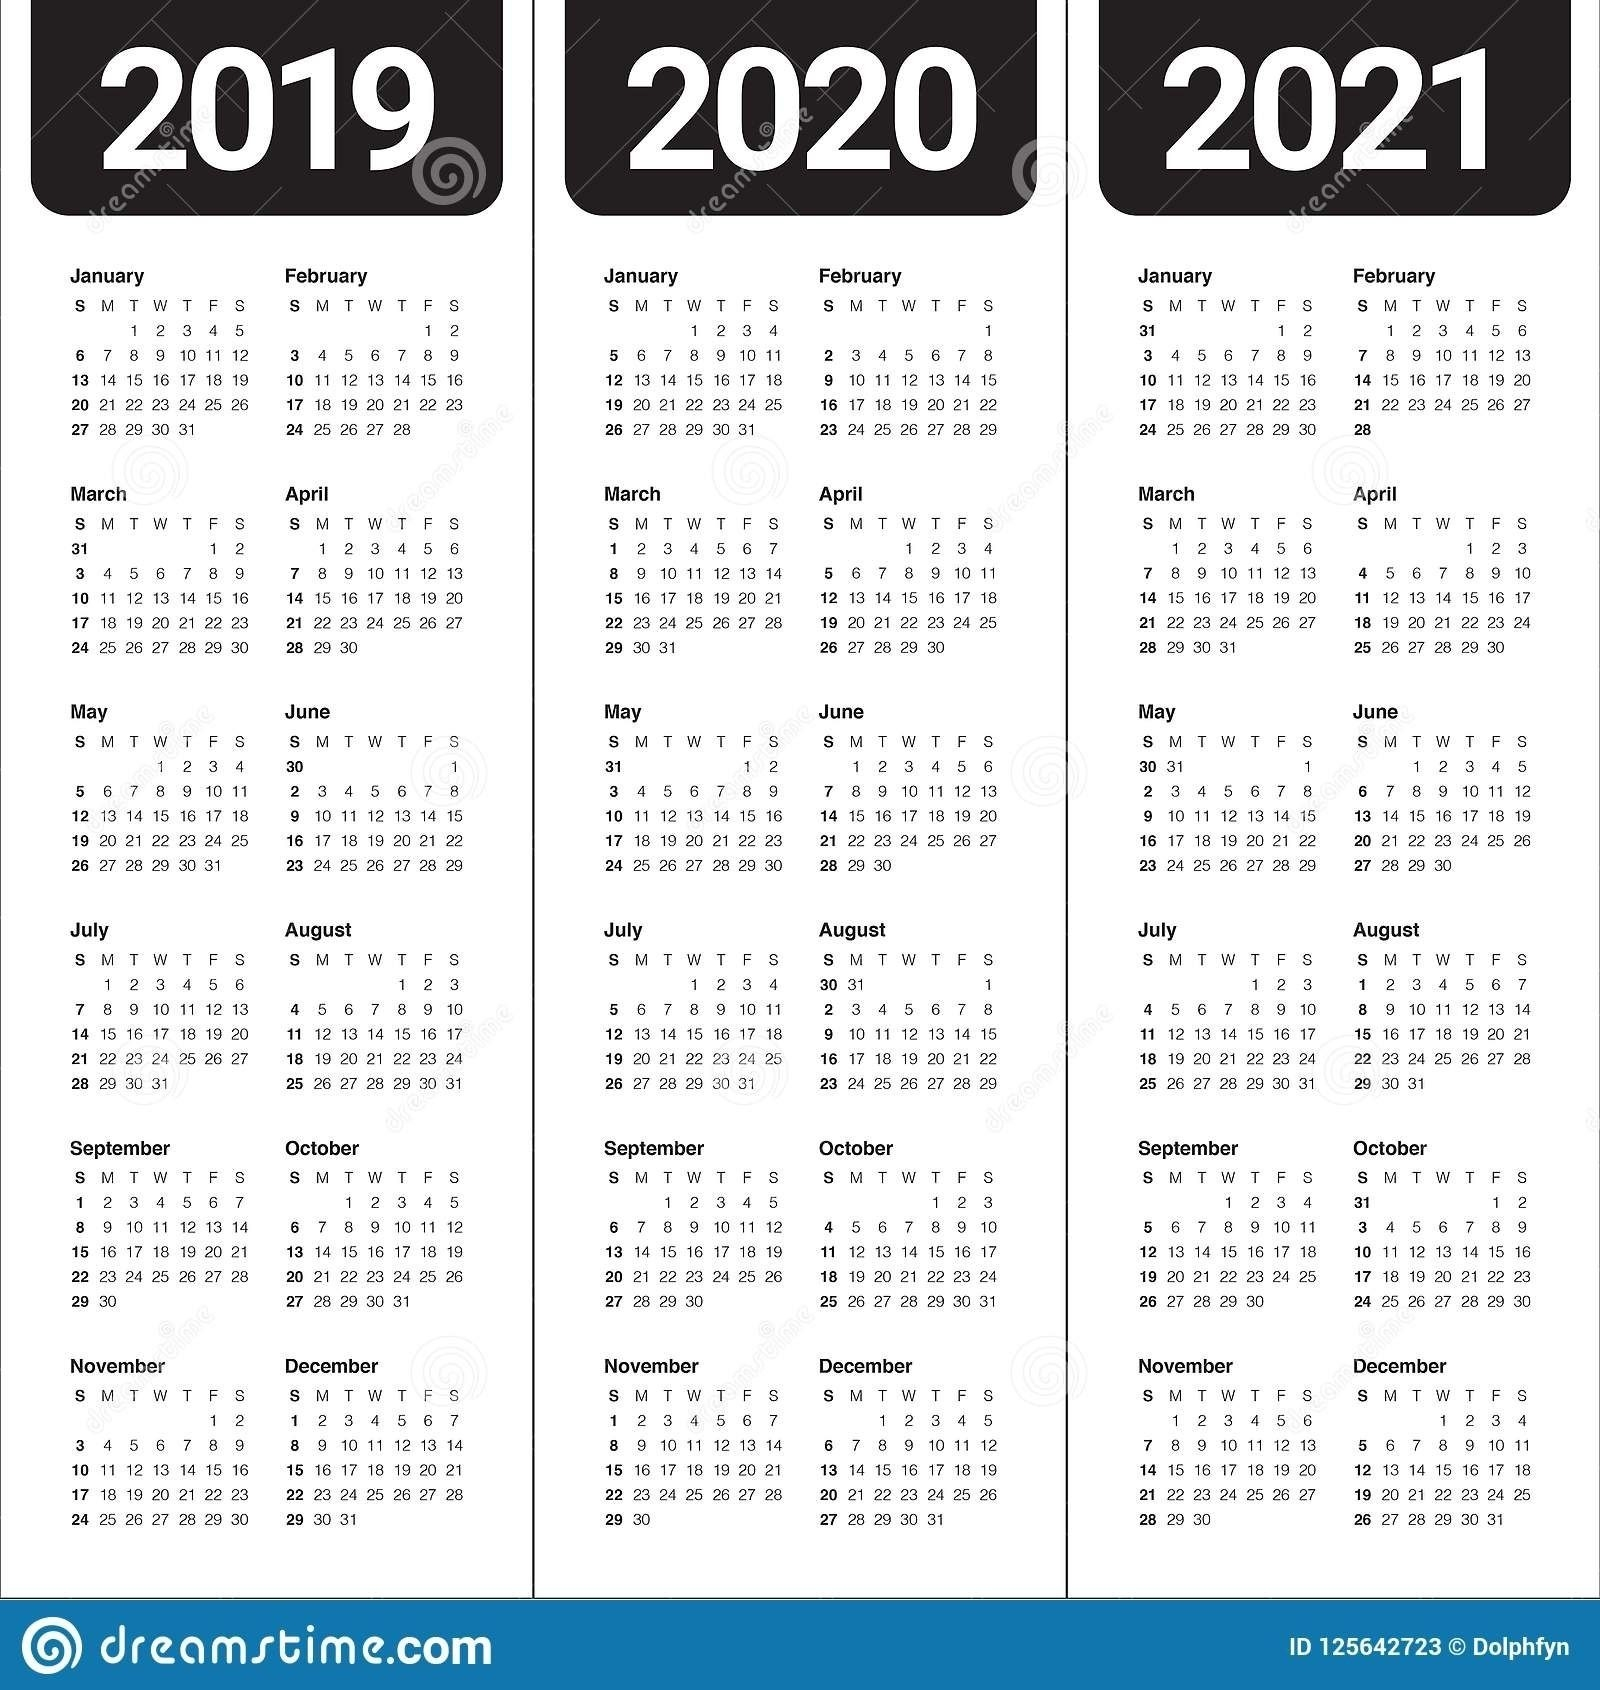 Incredible 2 Year Calendar 2020 And 2021 In 2020 | Calendar  Depo Provera Calendar 2021 Calculator